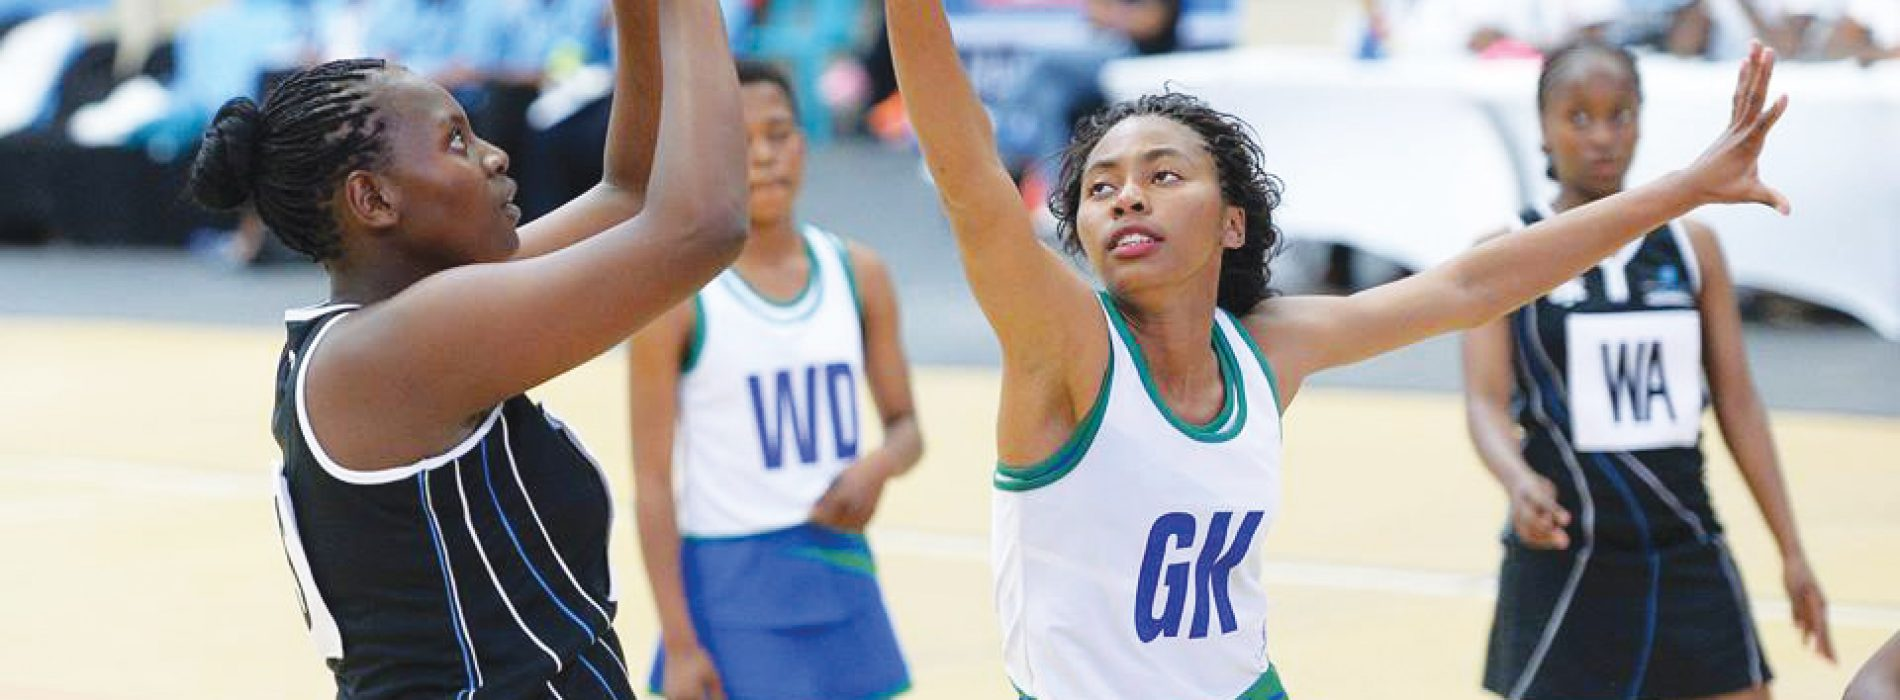 Netball team wants association dissolved